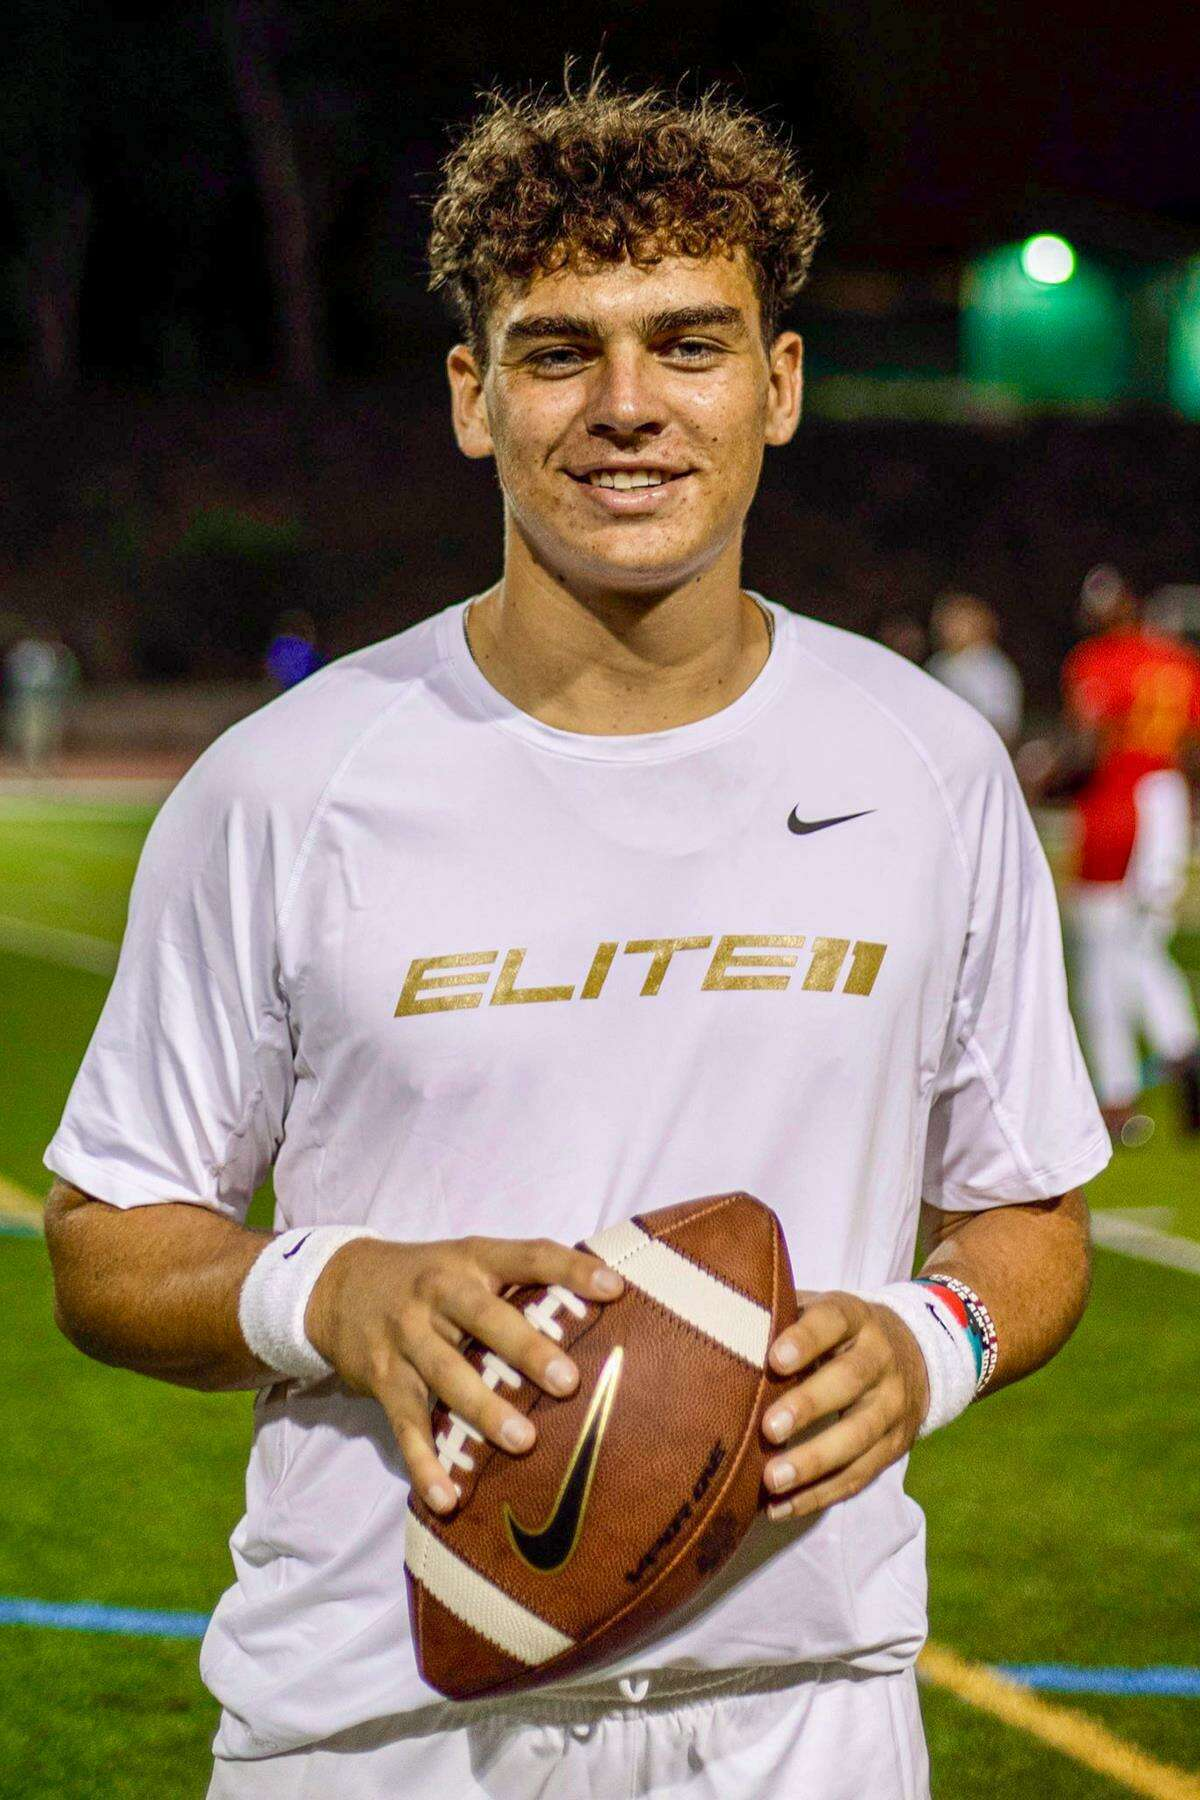 Bridgeland High School senior Conner Weigman, right, was named to the 2021 Elite 11, becoming just the sixth Houston-area football standout to earn the prestigious honor. The Elite 11 is the nation's premier quarterback competition.